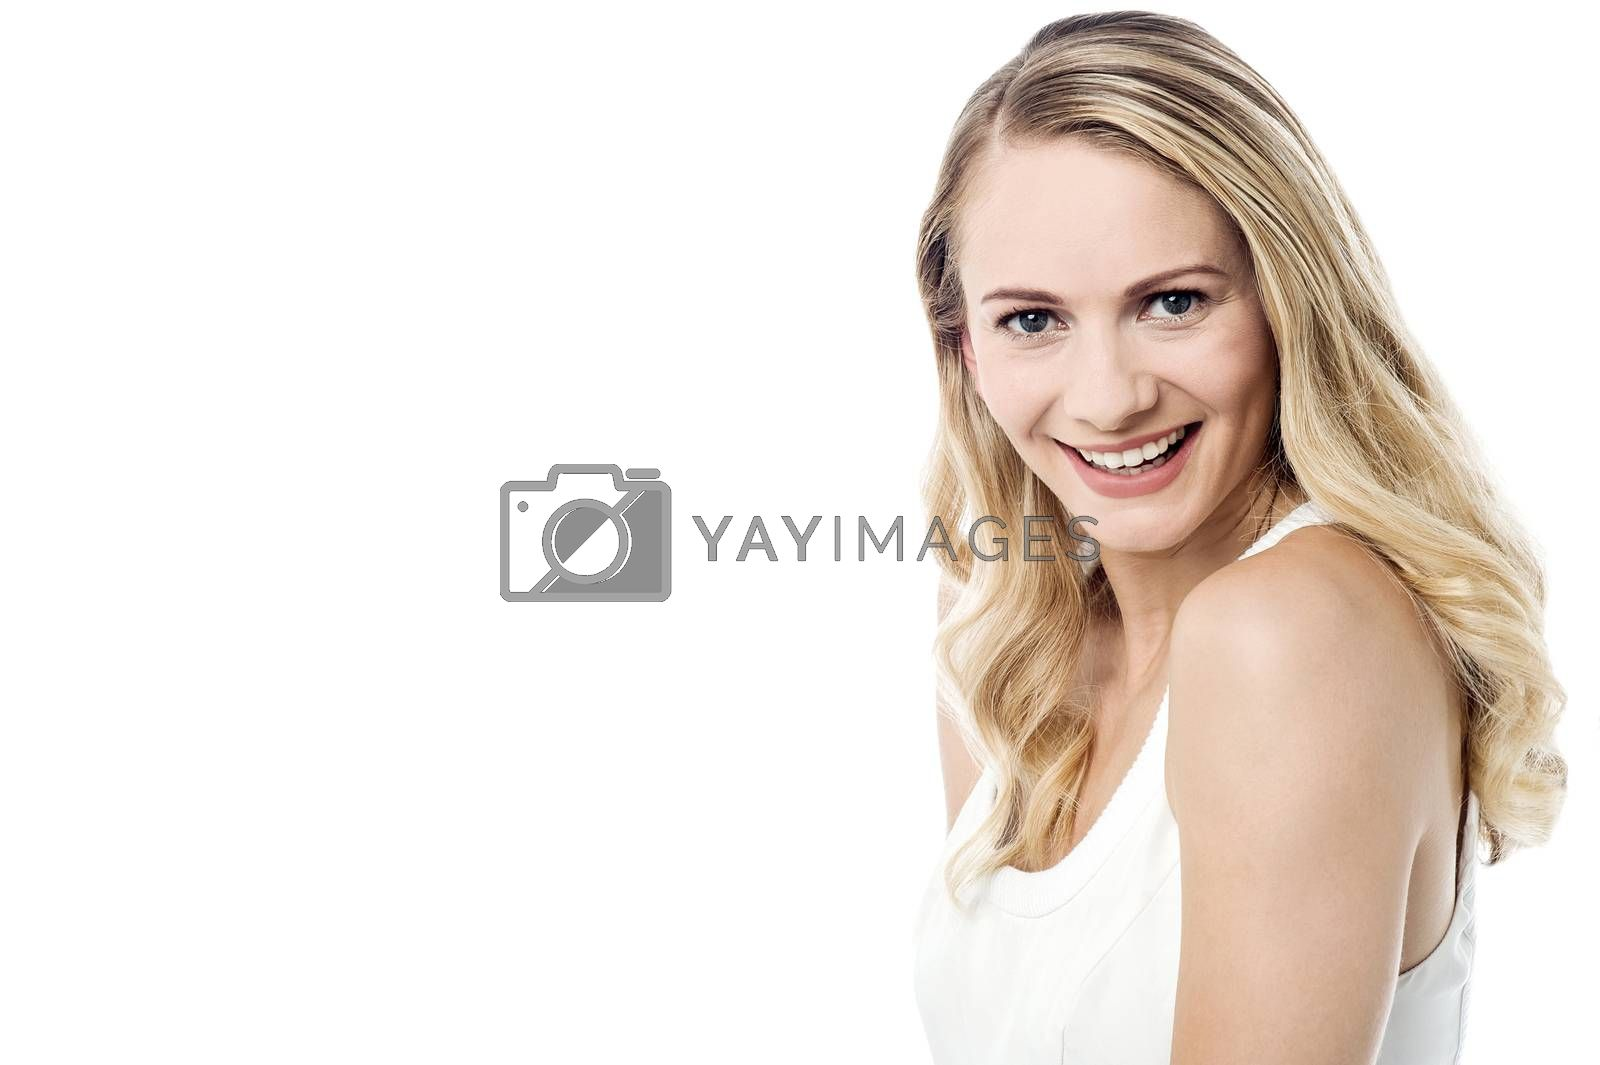 Image of a beautiful young girl posing over white